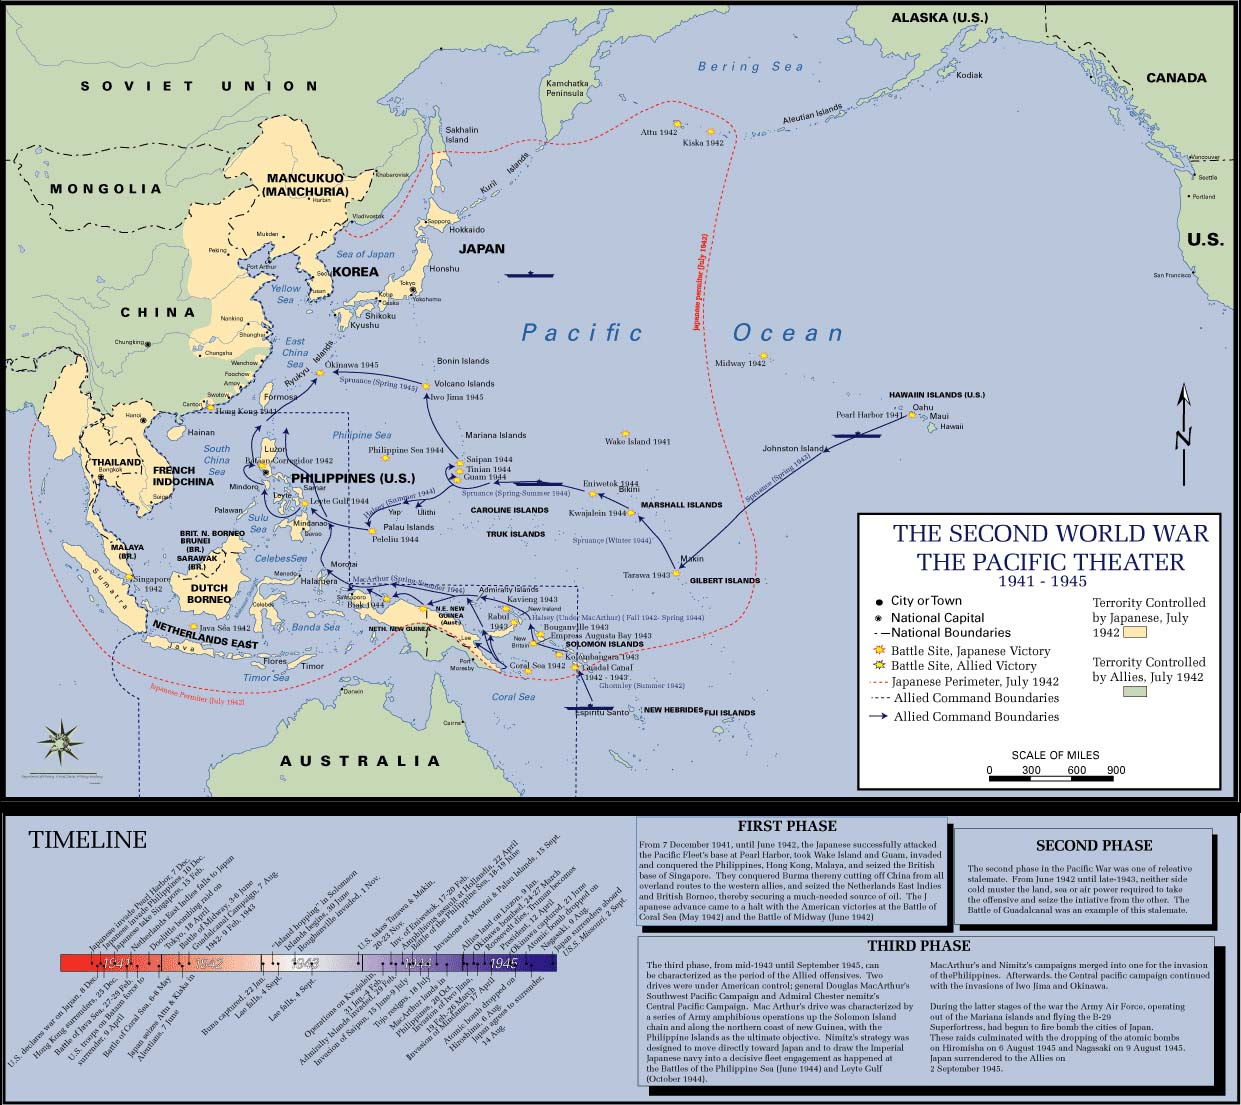 very close to the center of the map you can see the caroline islands guam is just above that